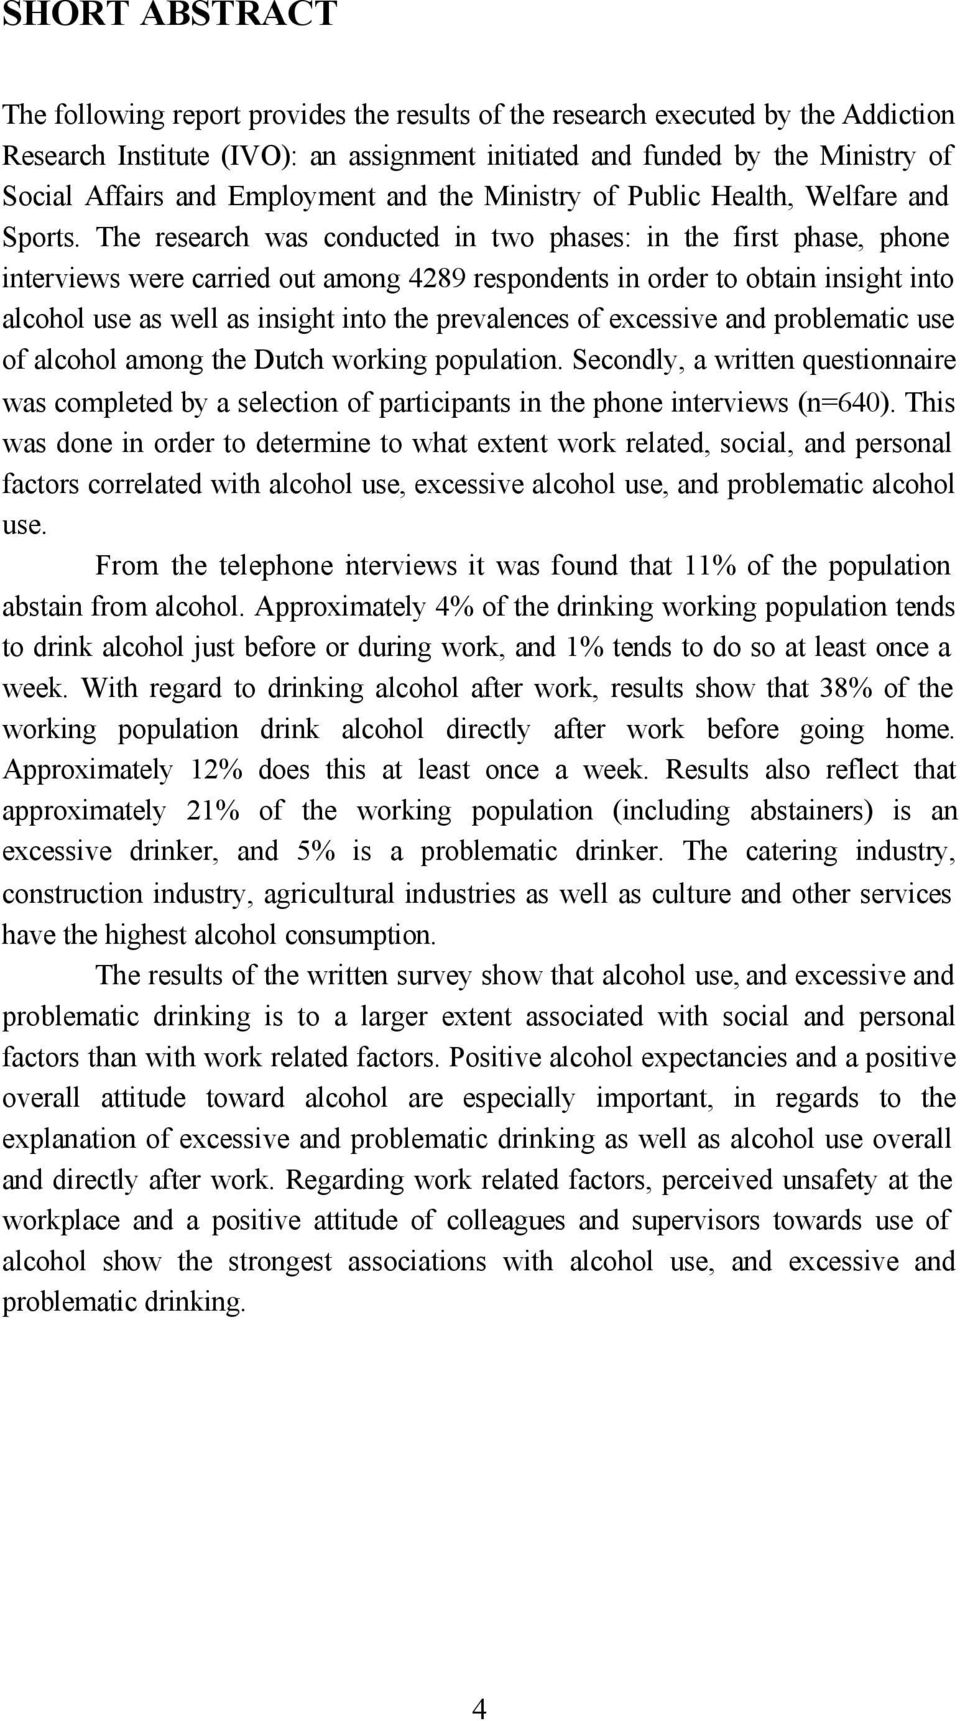 The research was conducted in two phases: in the first phase, phone interviews were carried out among 4289 respondents in order to obtain insight into alcohol use as well as insight into the